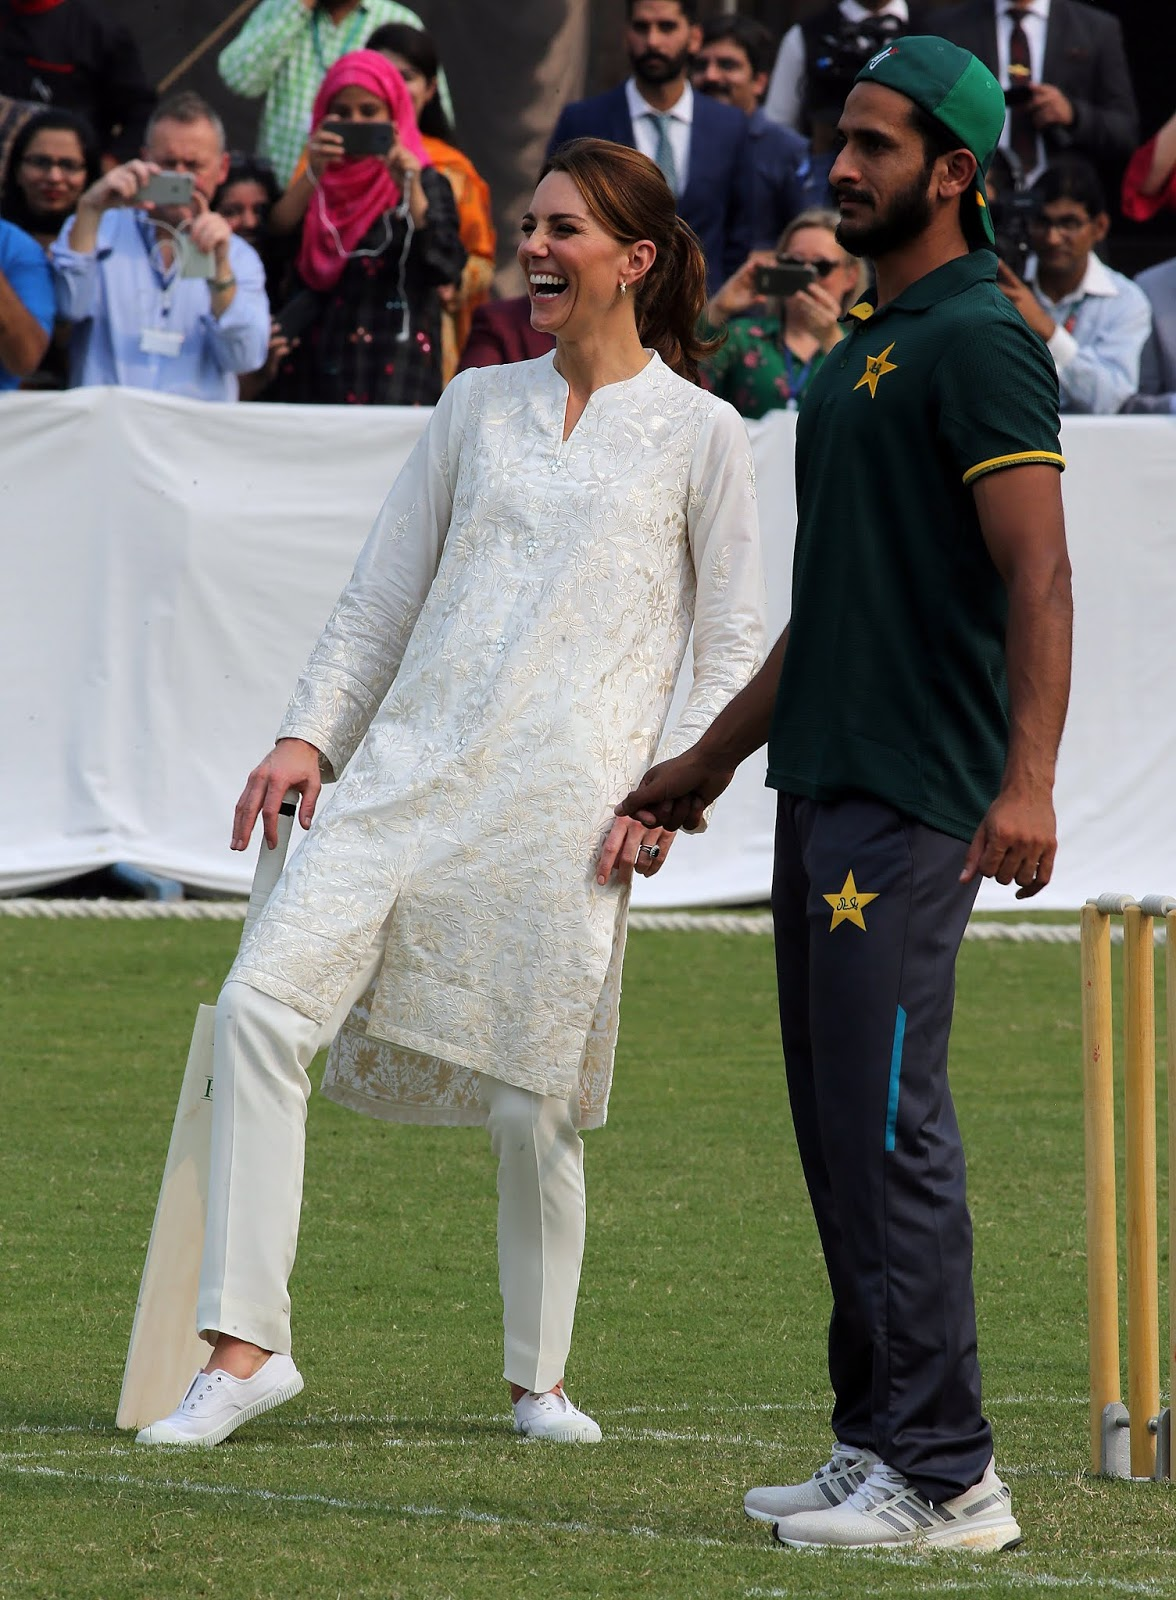 Prince William, Kate Middleton are all smiles as royal couple enjoy cricket session in Pakistan